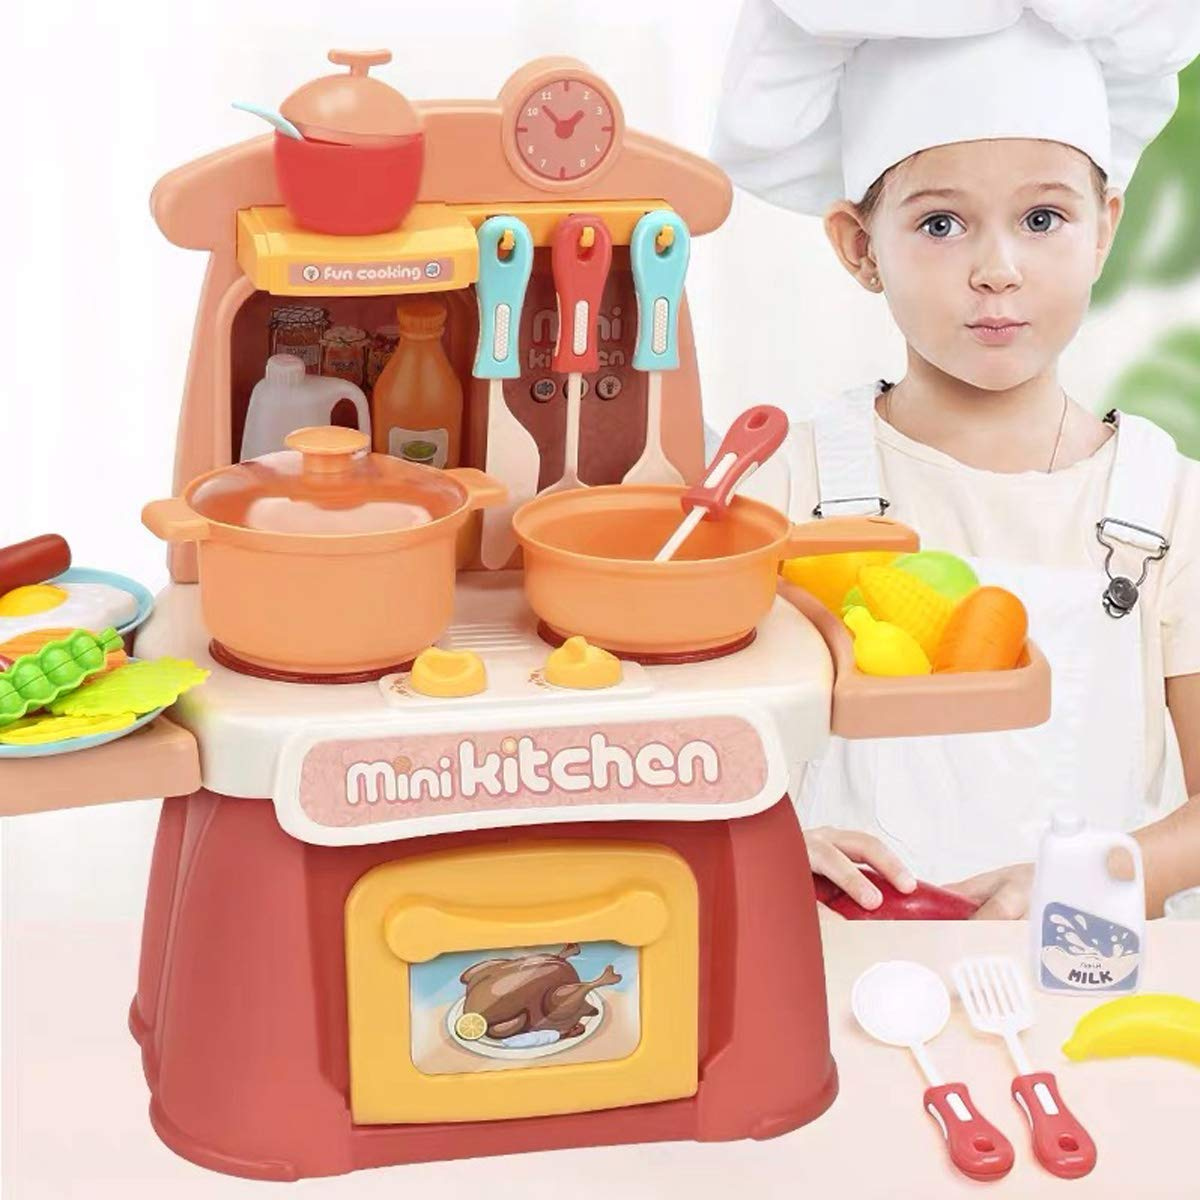 Super-ele kitchen set Kids Cooking Toys Children Mini Kitchen Playset Realistic Miniature Sounds Lights Chefs Pretend Play Dessert Food Party Role Toy Educational for toddlers Birthday Boys Girl(Pink)